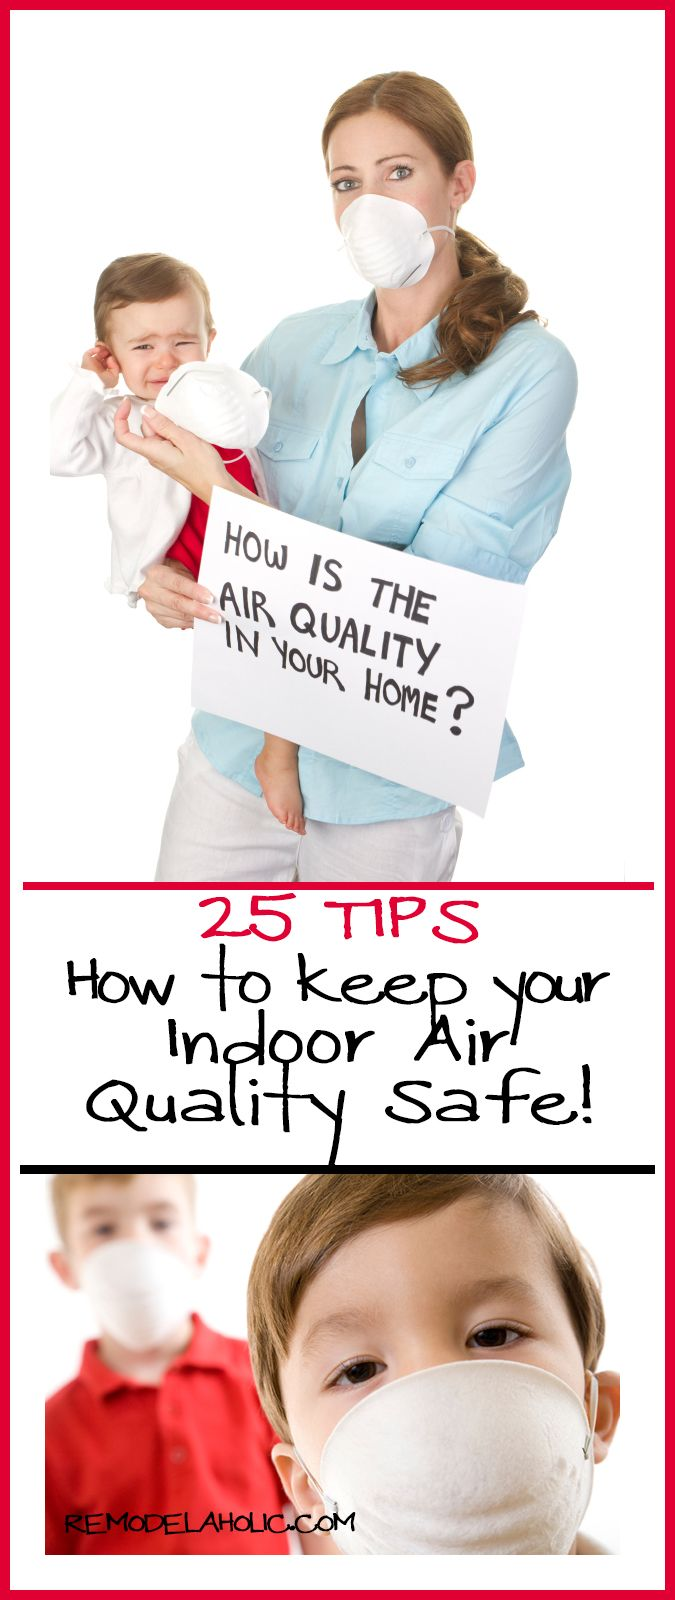 25 tips for cleaning your indoor air quality | remodelaholic.com #airquality #cleaning @Remodelaholic .com